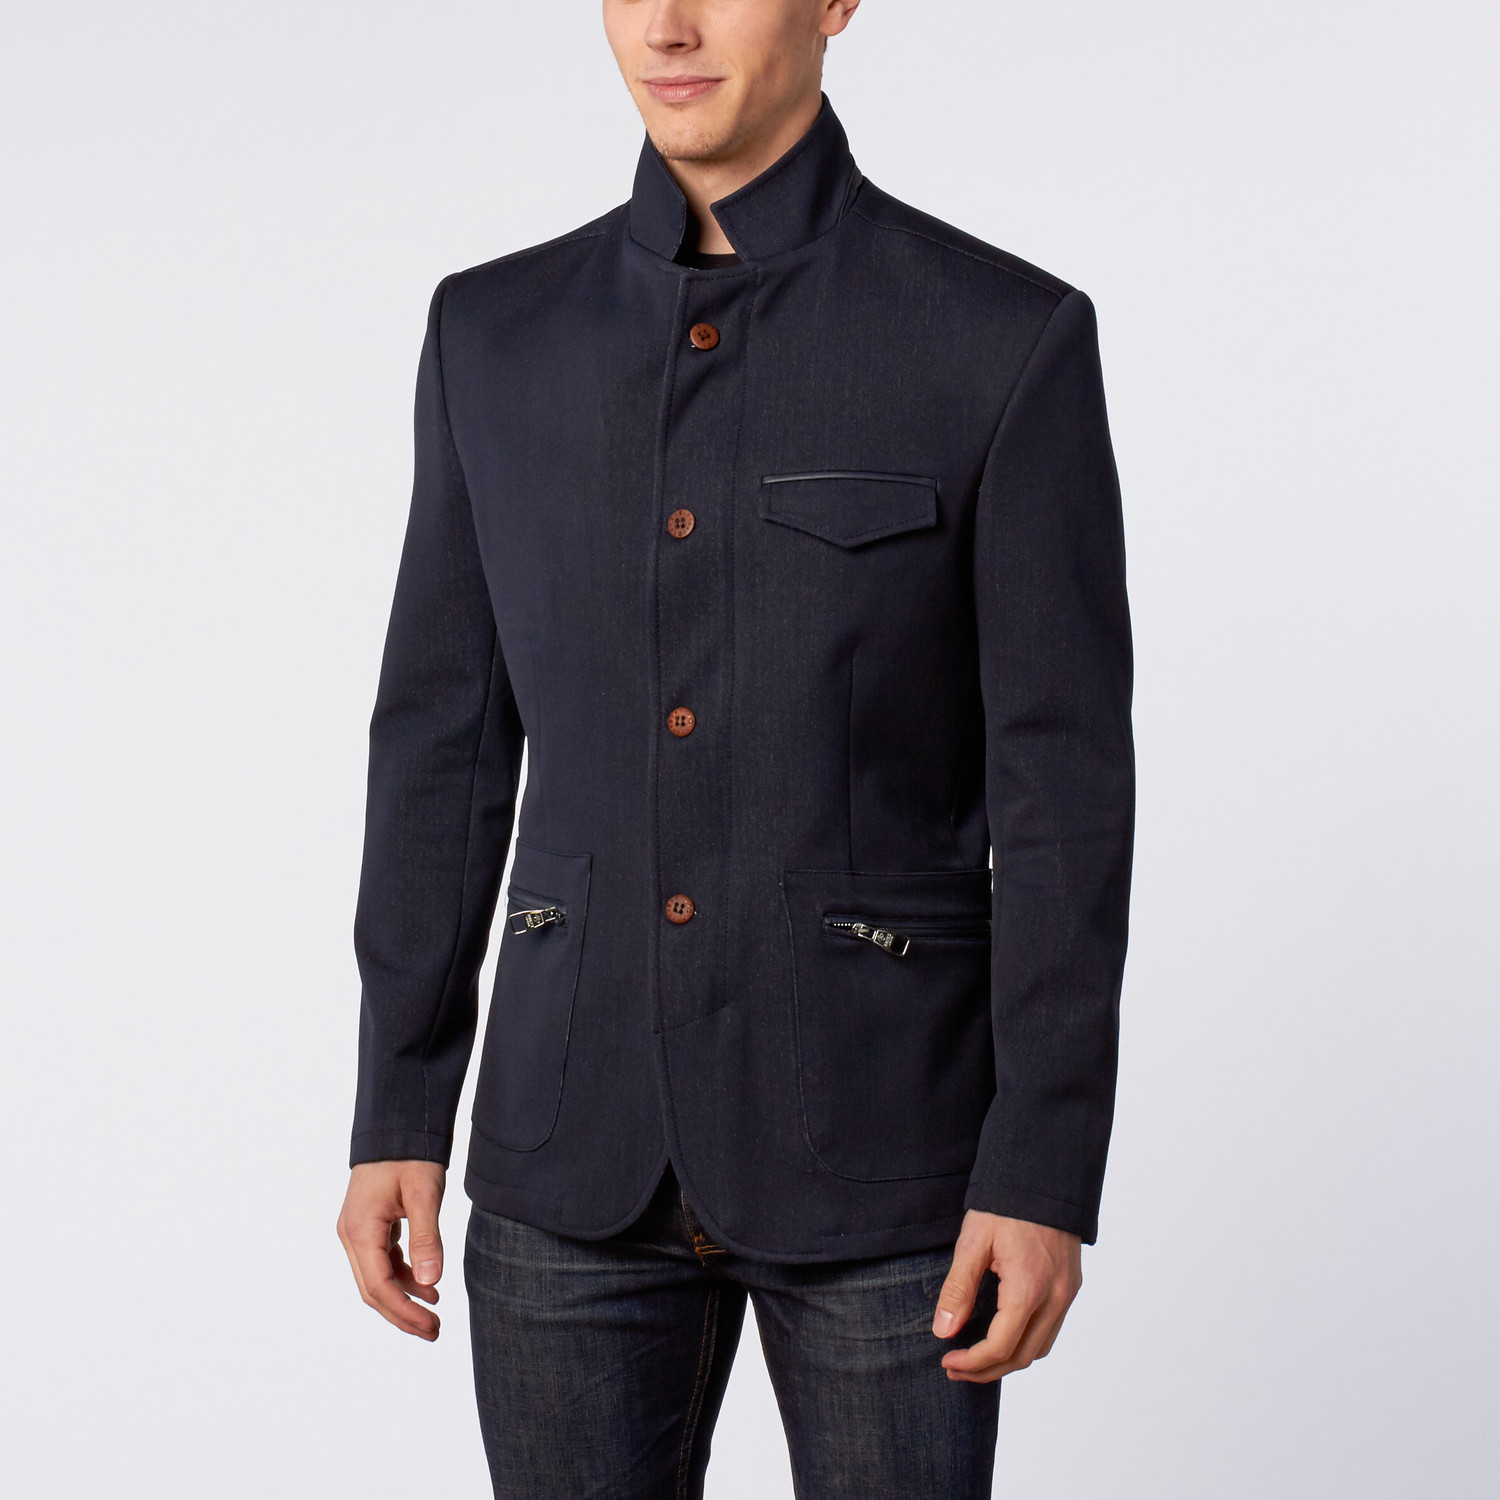 093879dfc433 Stand Collar Jacket    Navy (M) - Ron Tomson - Touch of Modern